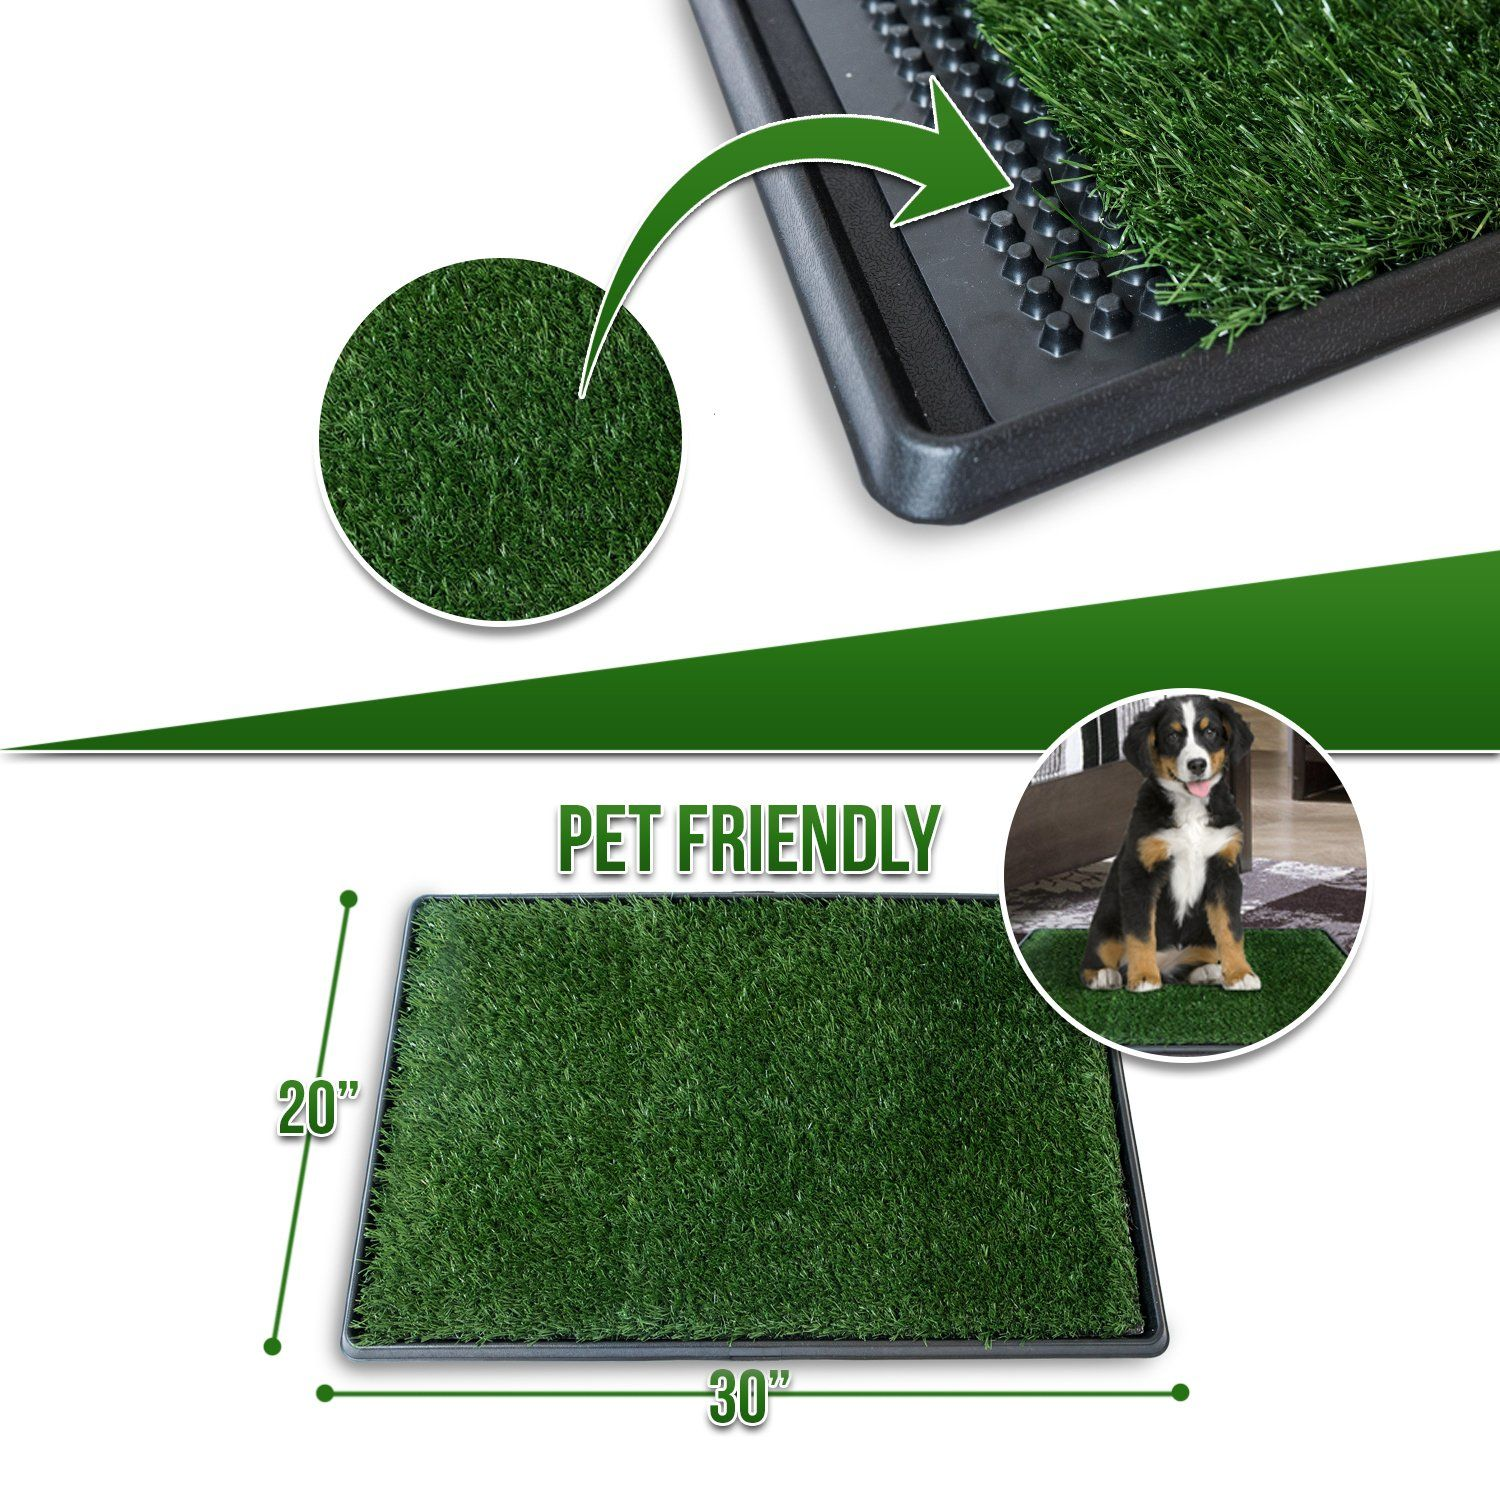 Ideas In Life Dog Potty Grass Pee Pad C Artificial Pet Grass Patch For Dogs To Pee On Great For Puppy Potty Training As An Ind Pet Grass Dog Potty Grass